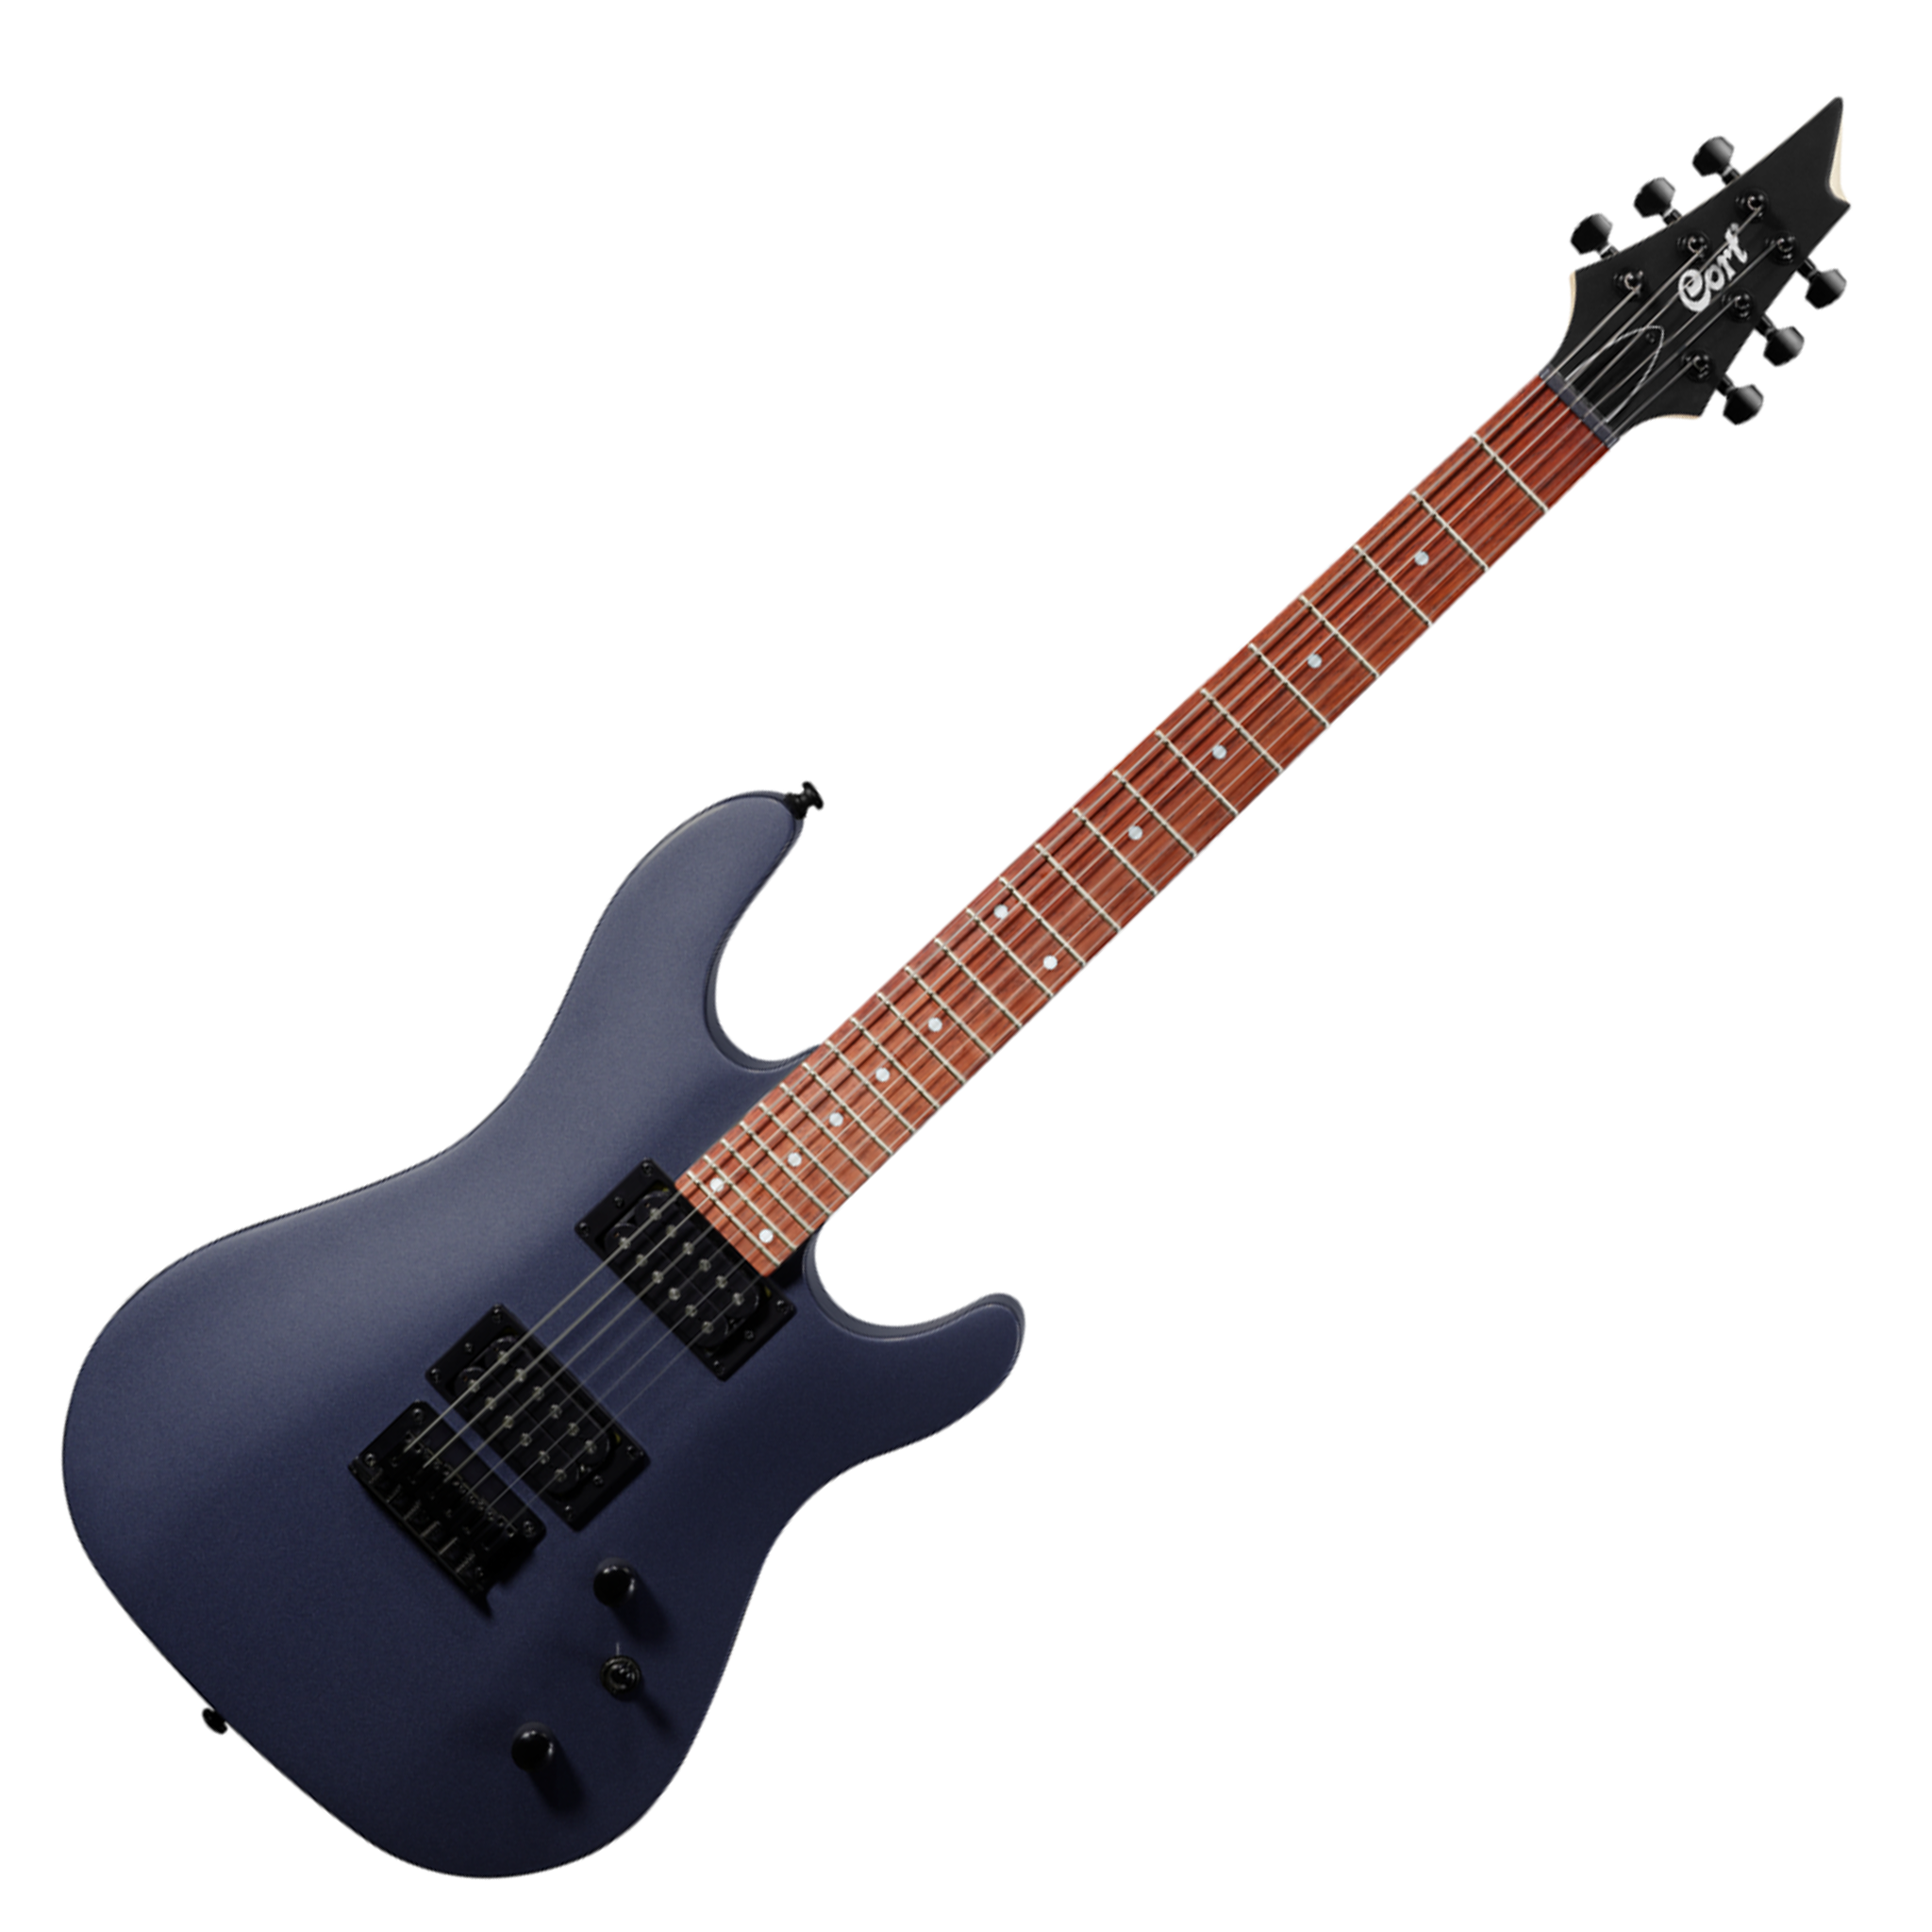 Cort KX100 Electric Guitar (Metallic Ash)